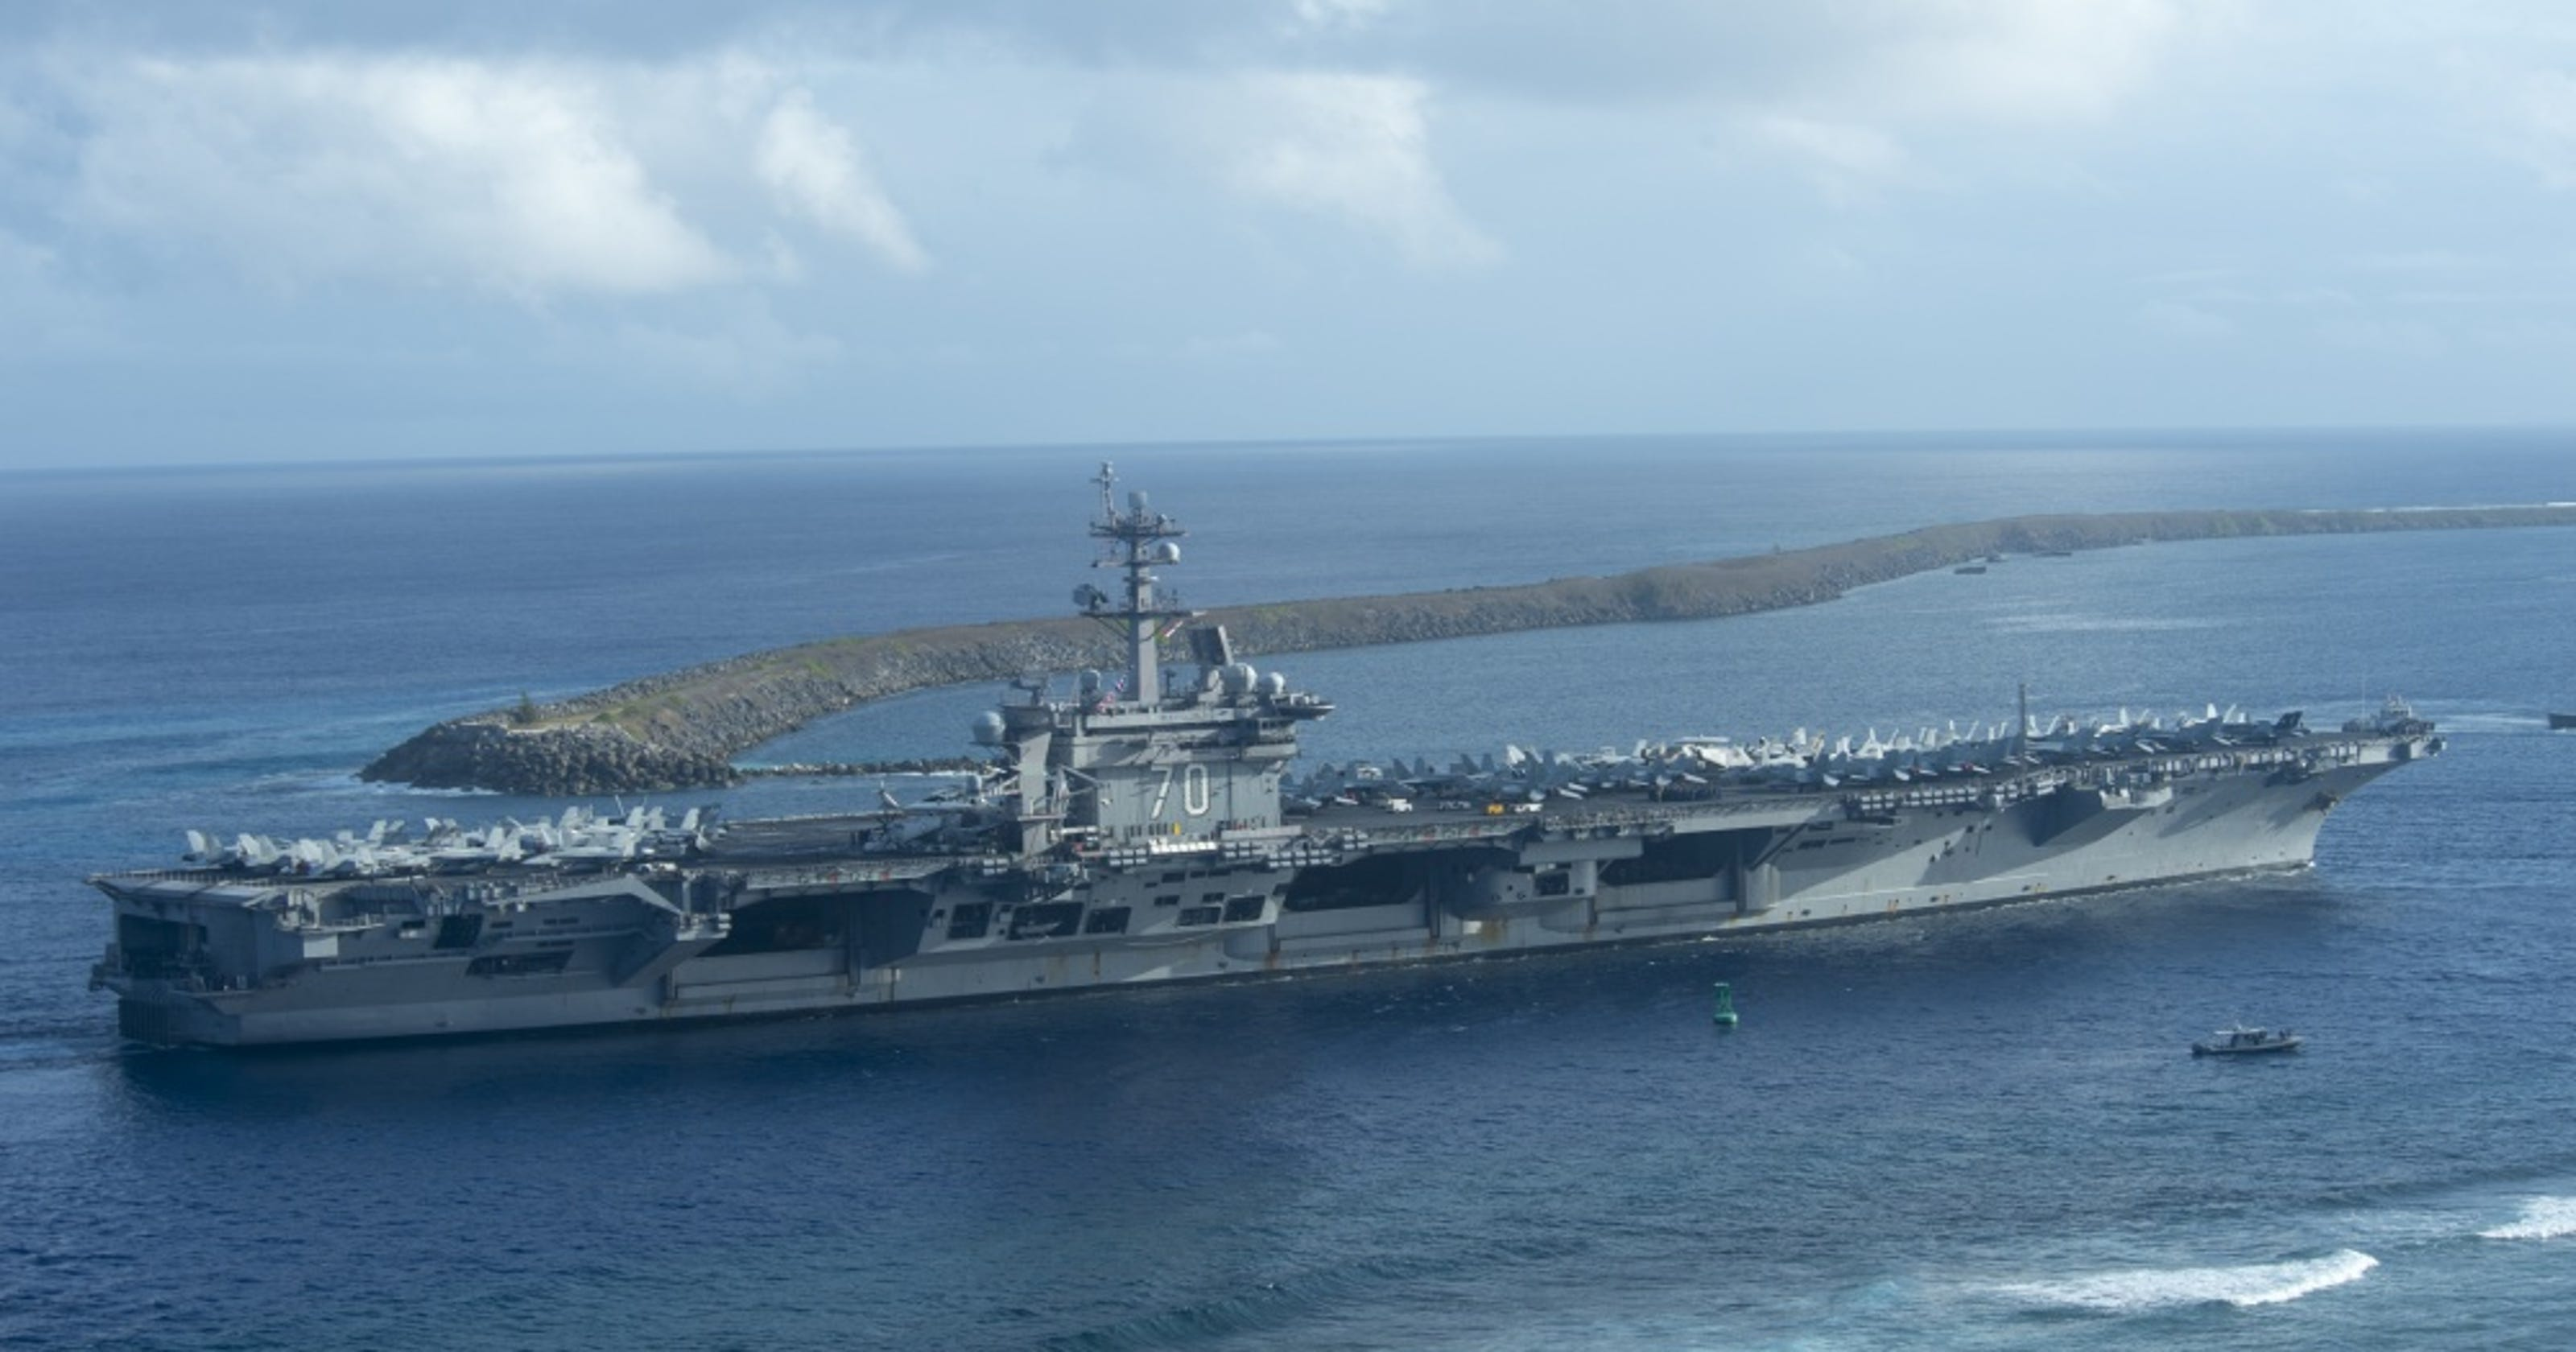 USS Carl Vinson coming to Bremerton in 2019